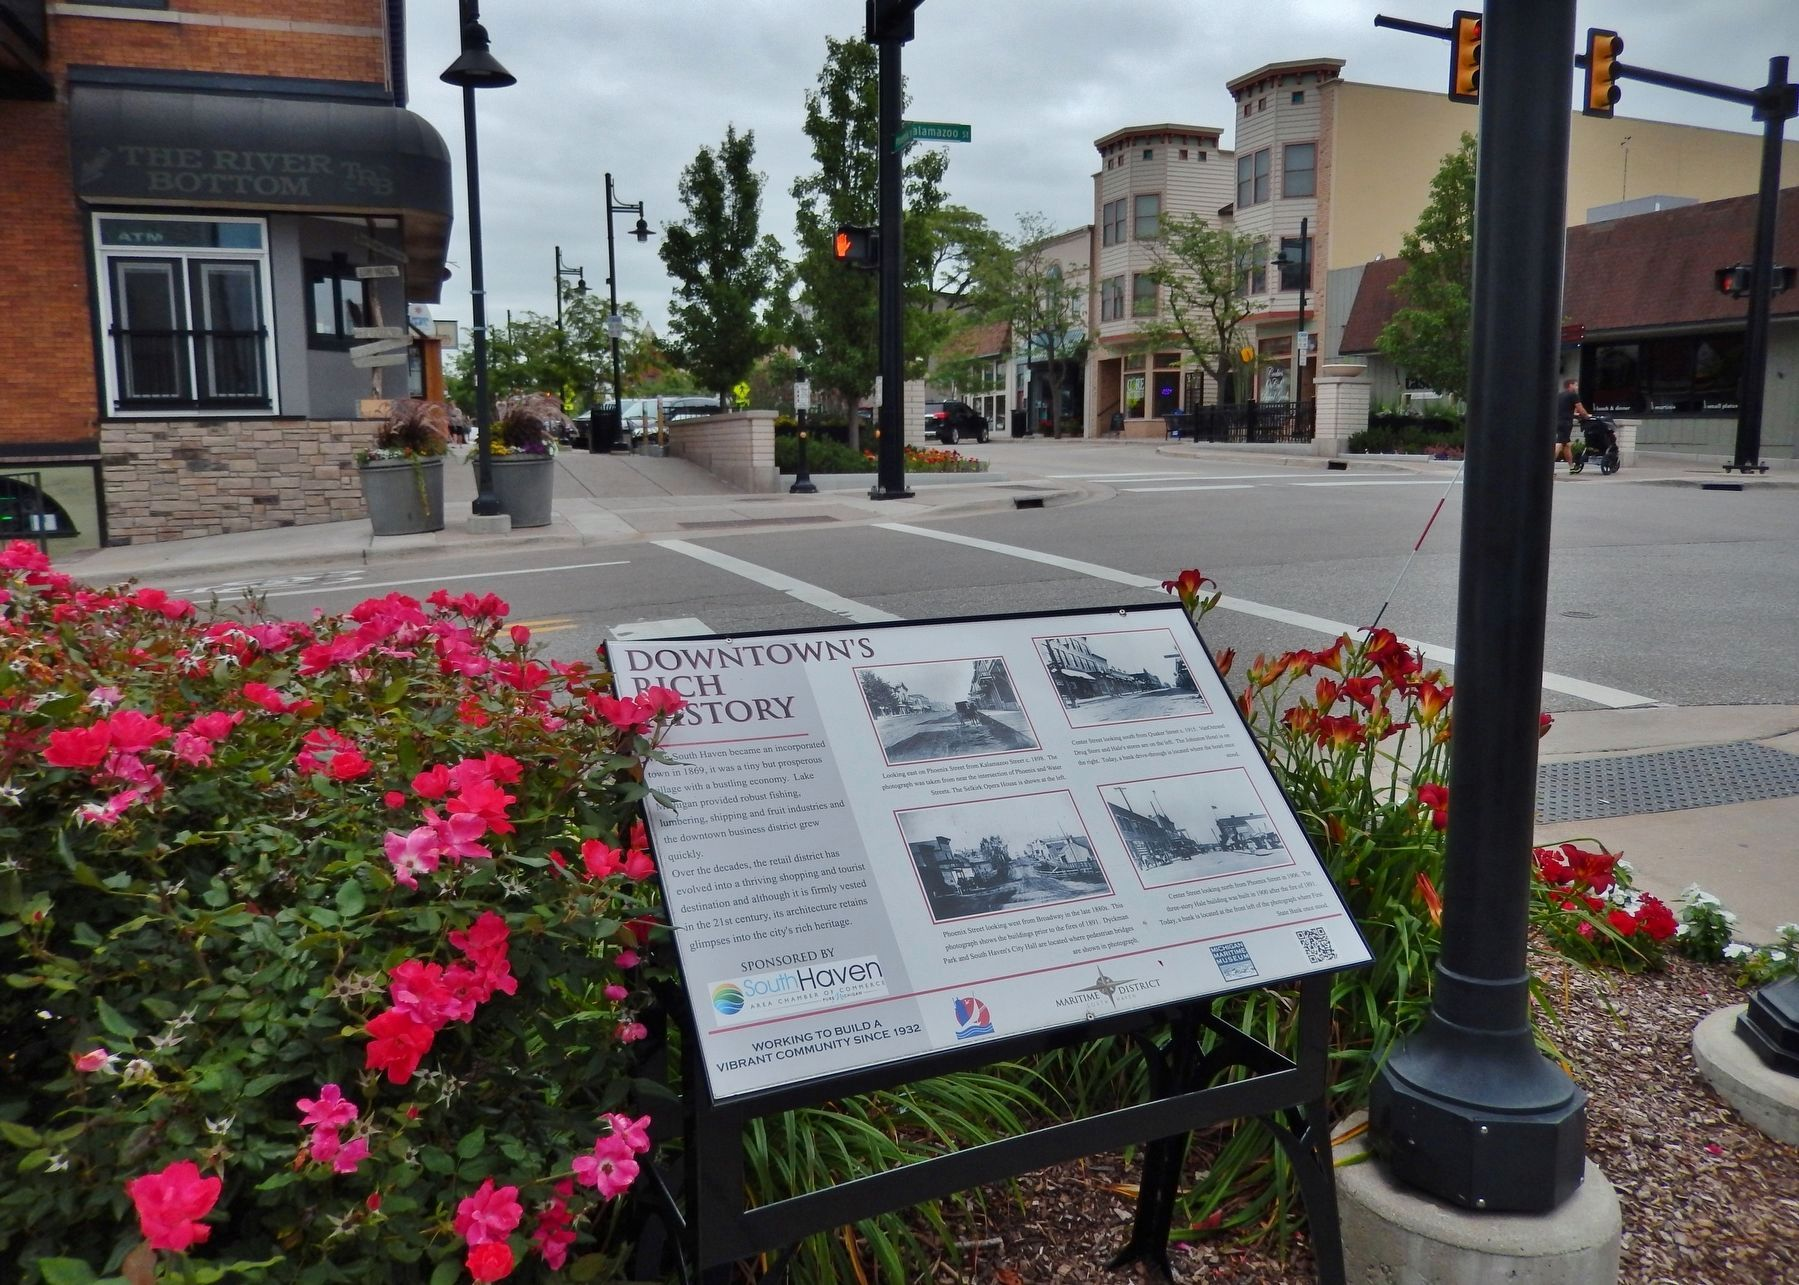 Downtown&#39;s Rich History Marker (<i>wide view; looking east on Phoenix Street from Kalamazoo</i>) image. Click for full size.